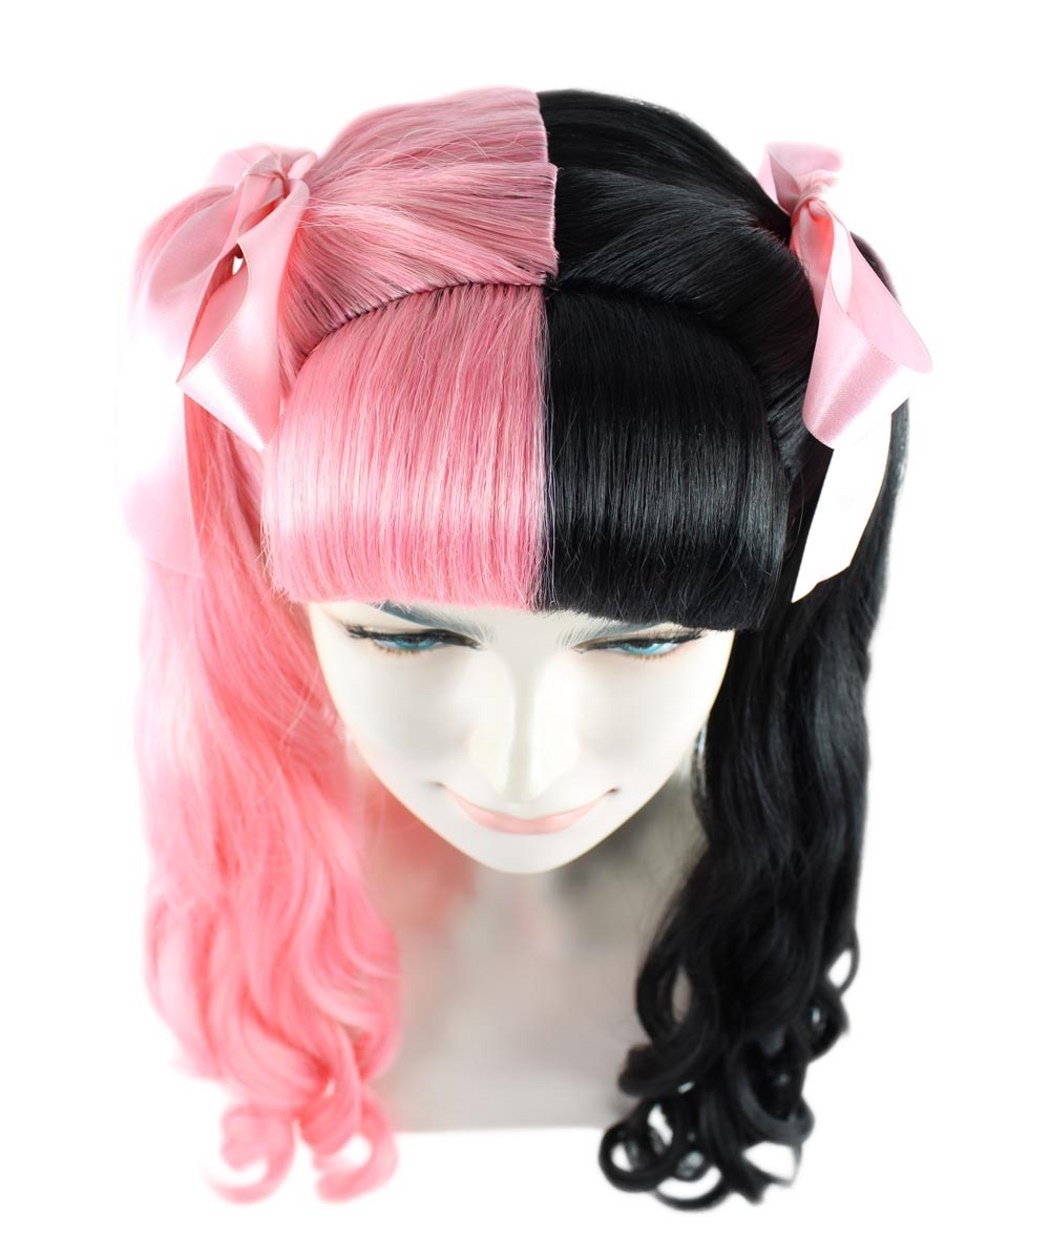 Long Curly Wigs Two Tone Ponytail Hair w/Bangs Ribbon Bows For Pop Singer Cosplay Costume Party